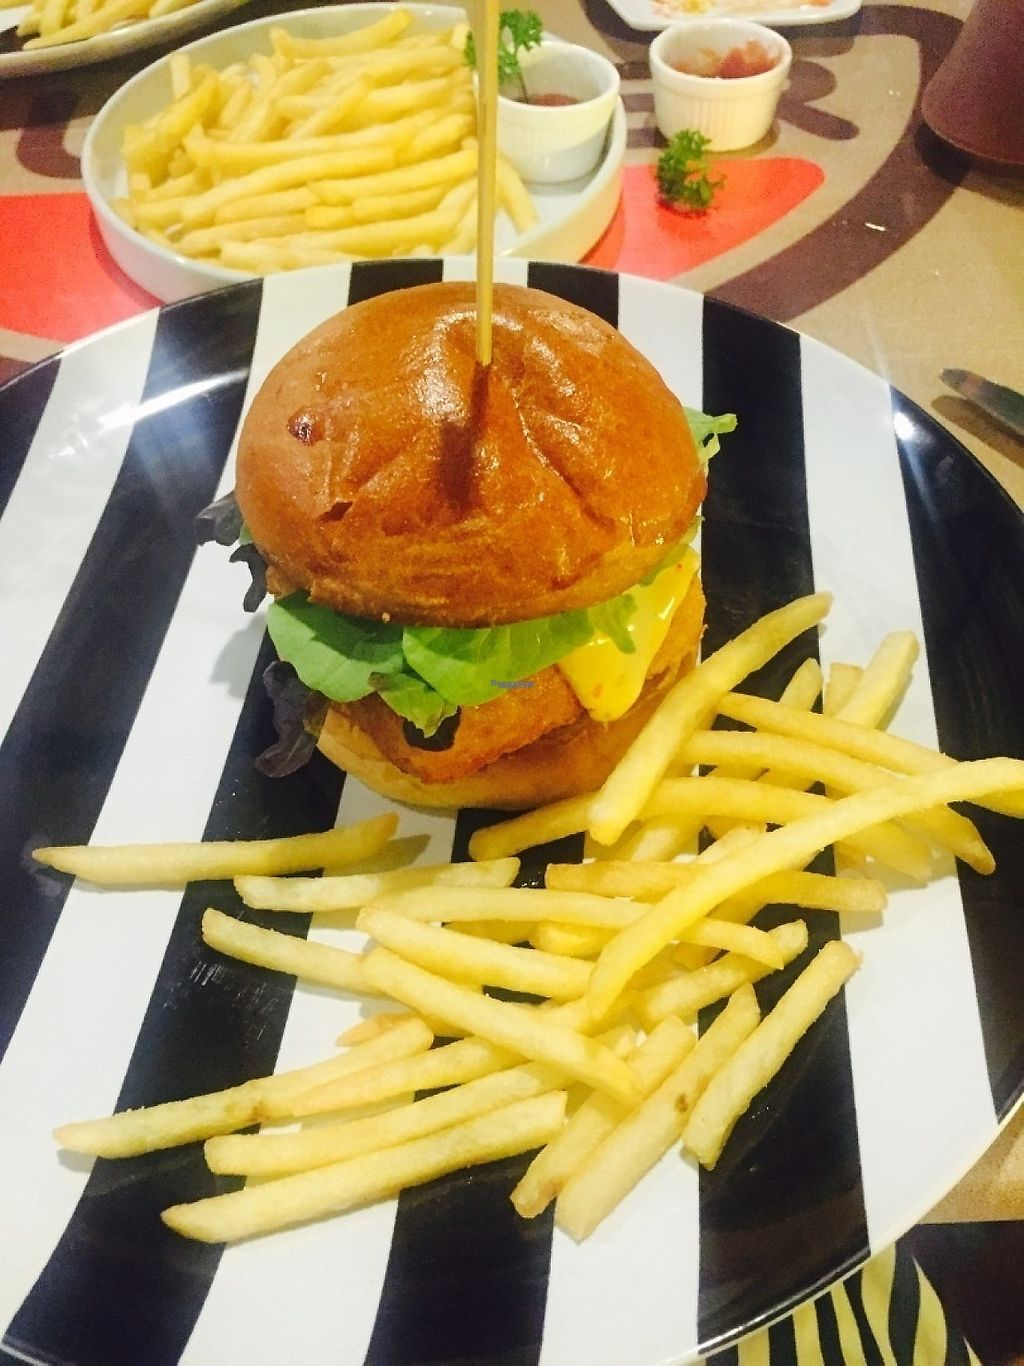 """Photo of 31burger  by <a href=""""/members/profile/Katface"""">Katface</a> <br/>Mac and cheese burger  <br/> March 13, 2017  - <a href='/contact/abuse/image/84162/235748'>Report</a>"""